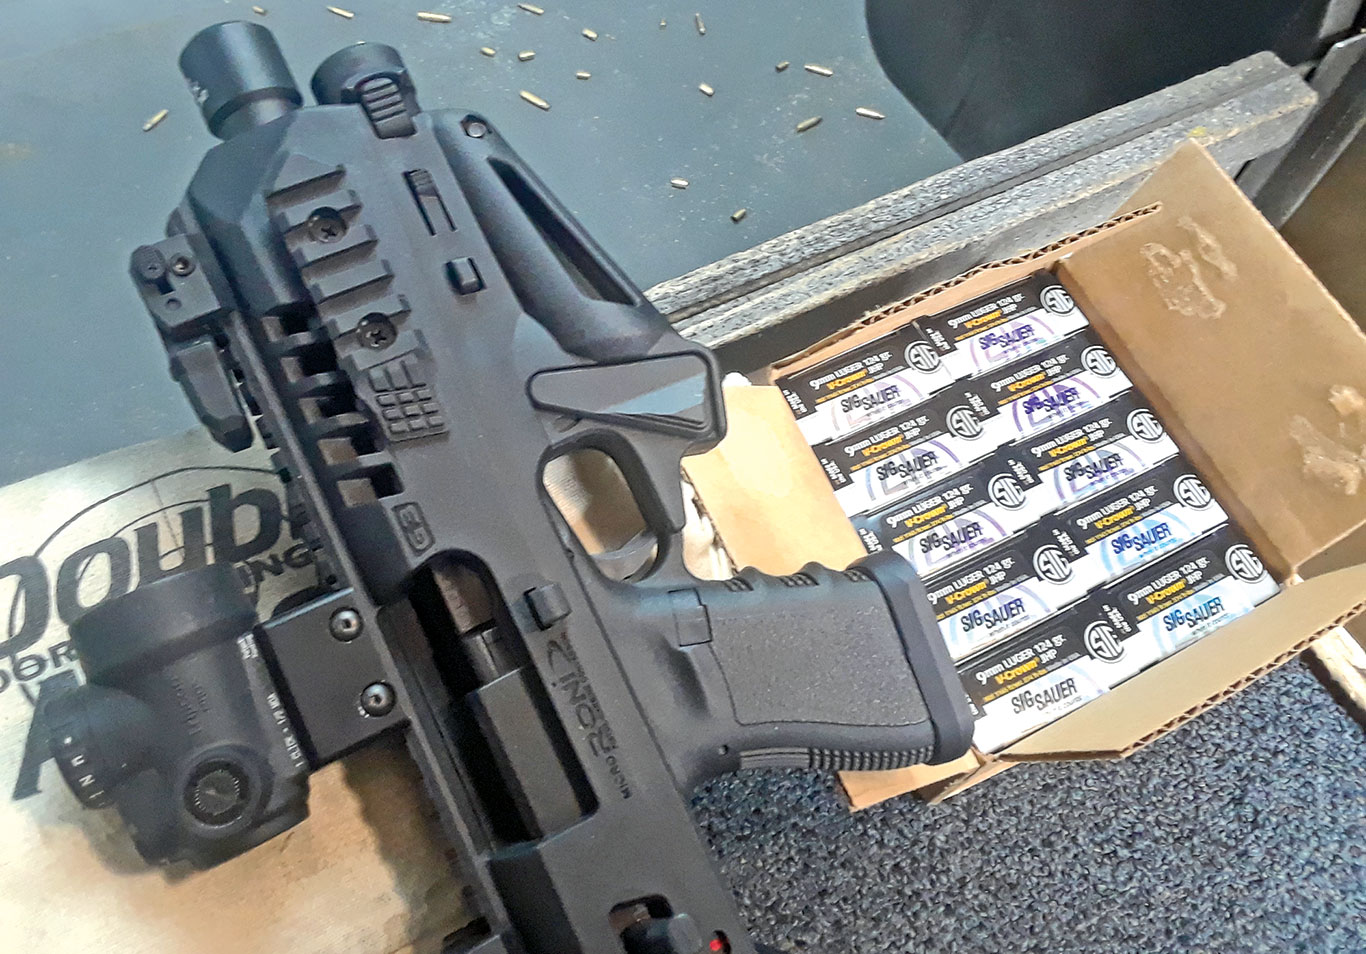 When zeroing the RONI at the 50-yard indoor range, Tarr used SIG Elite 124-grain JHPs. A short pistol mag made it easier to shoot off sandbags.